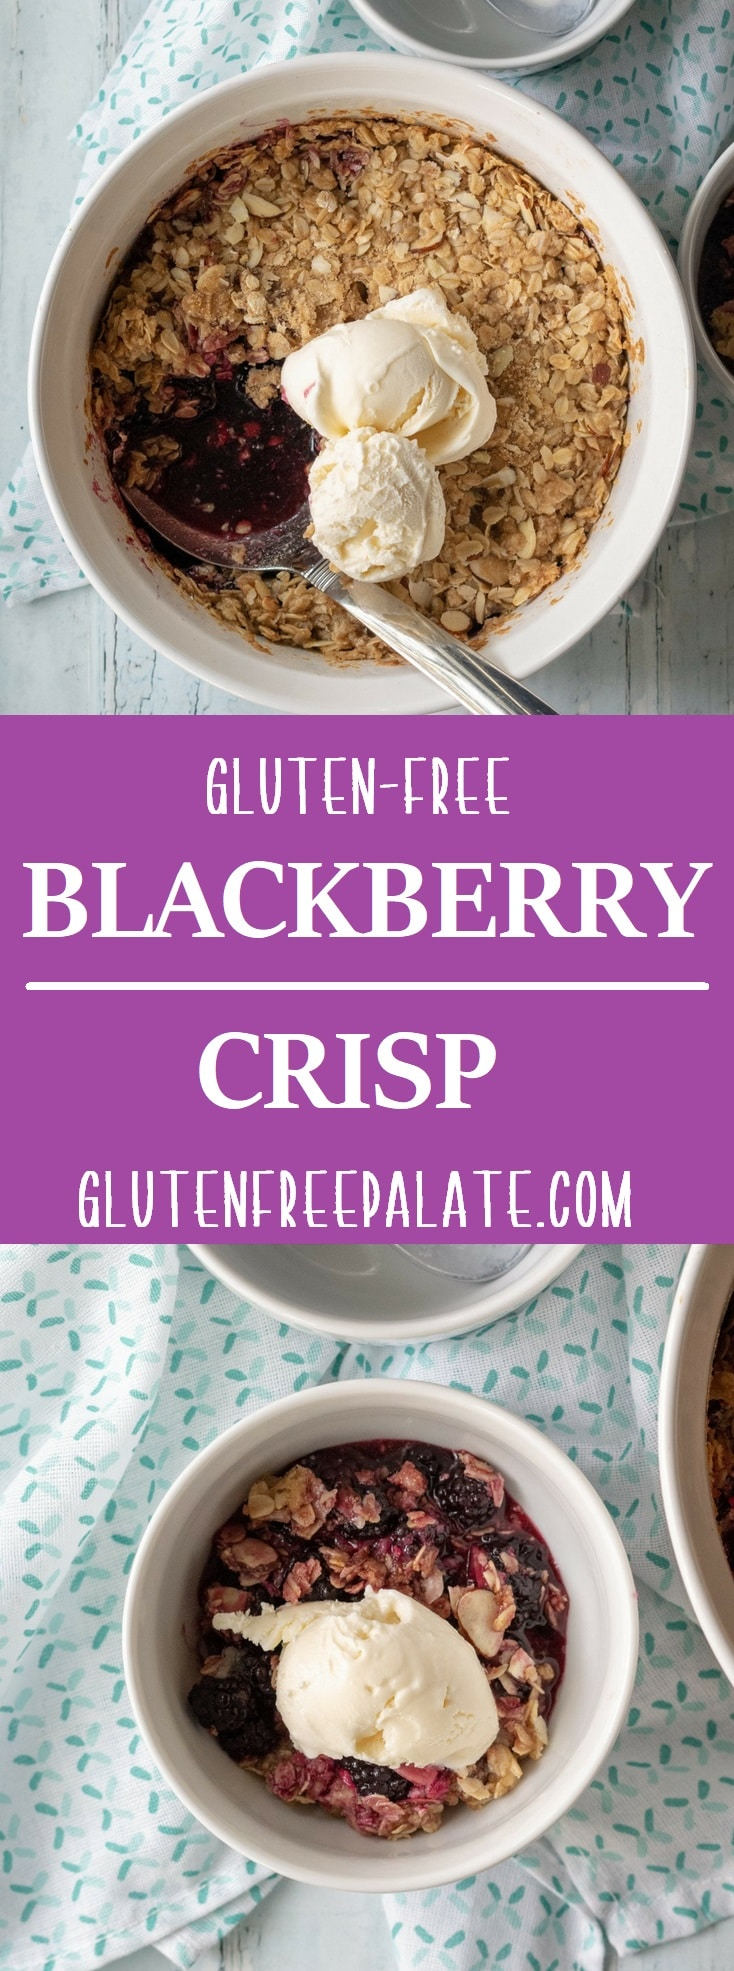 Looking for a way to use your blackberries? This gluten-free blackberry crisp has the perfect juicy blackberry filling and sweet, crunchy topping.